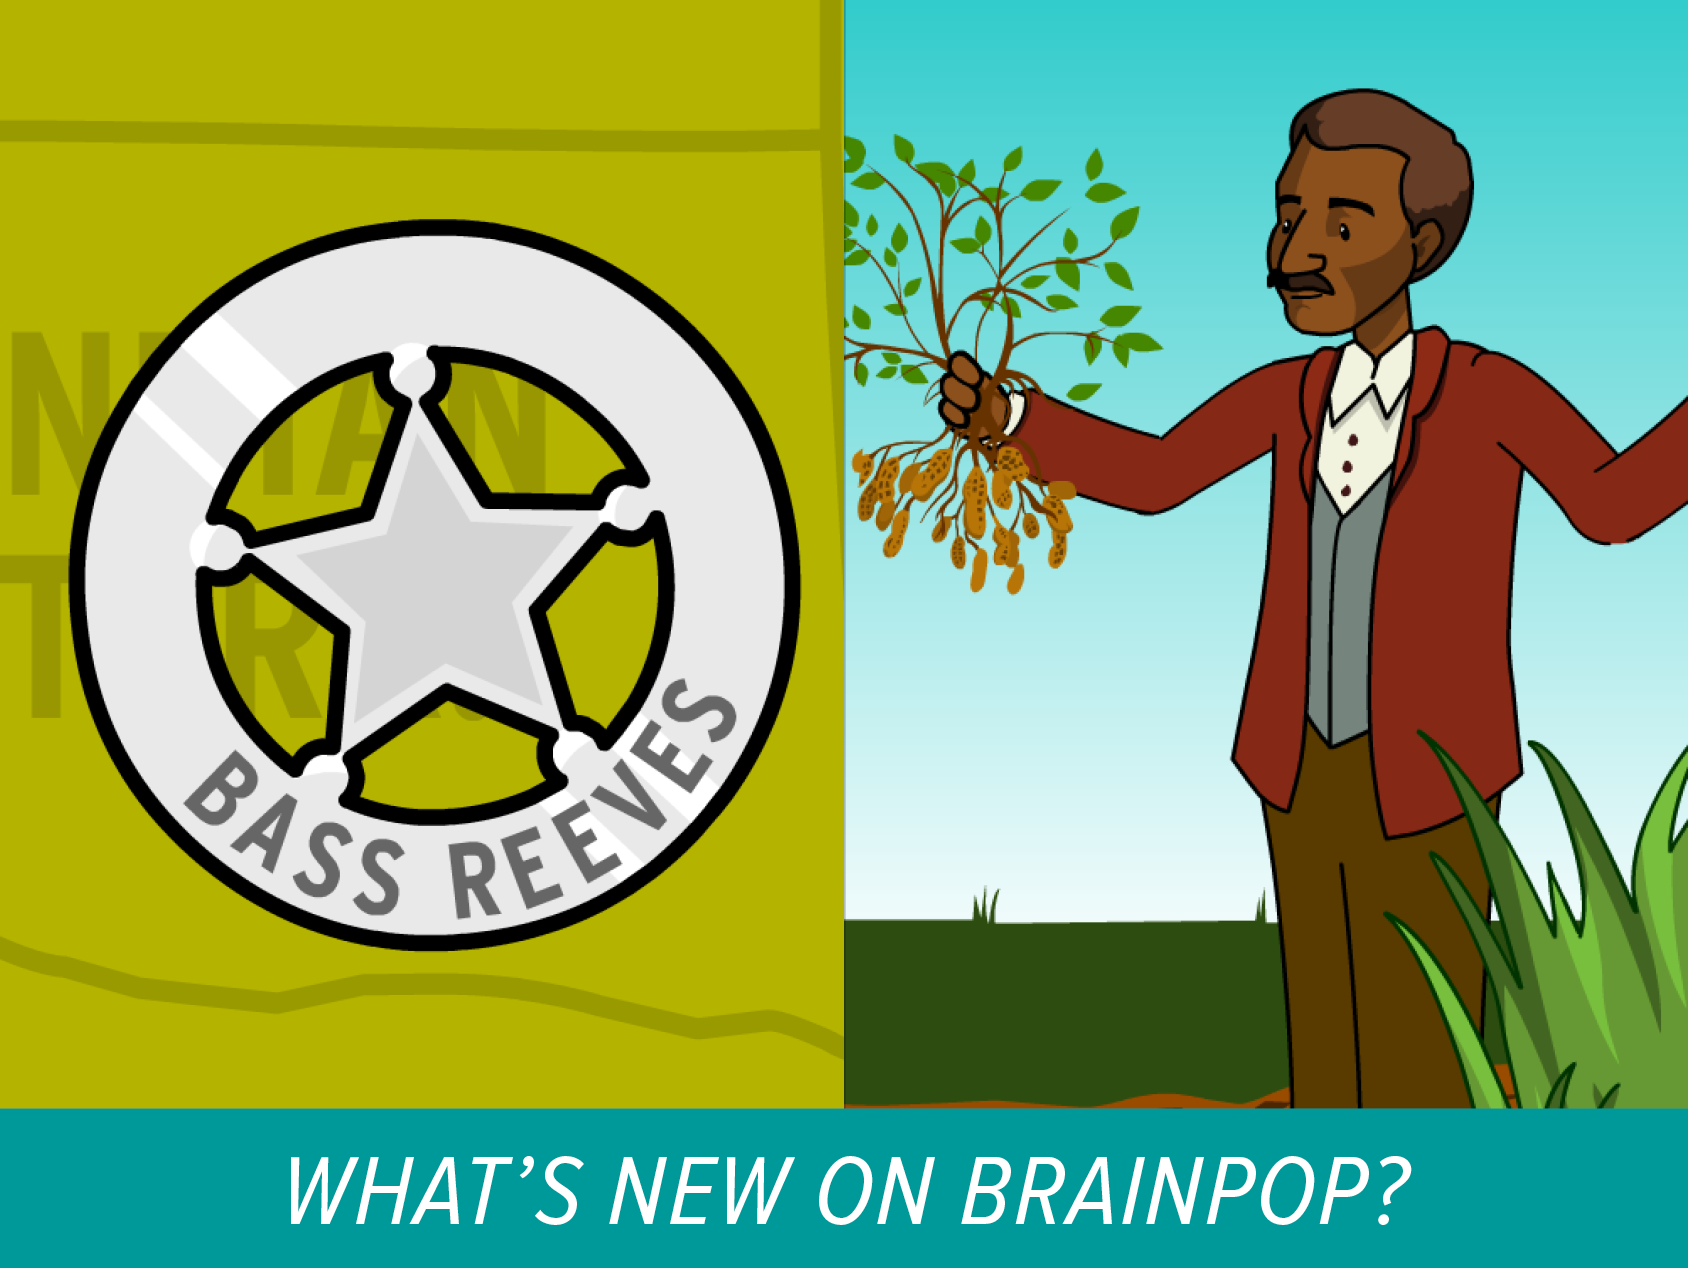 New Movies on BrainPOP – Bass Reeves and George Washington Carver